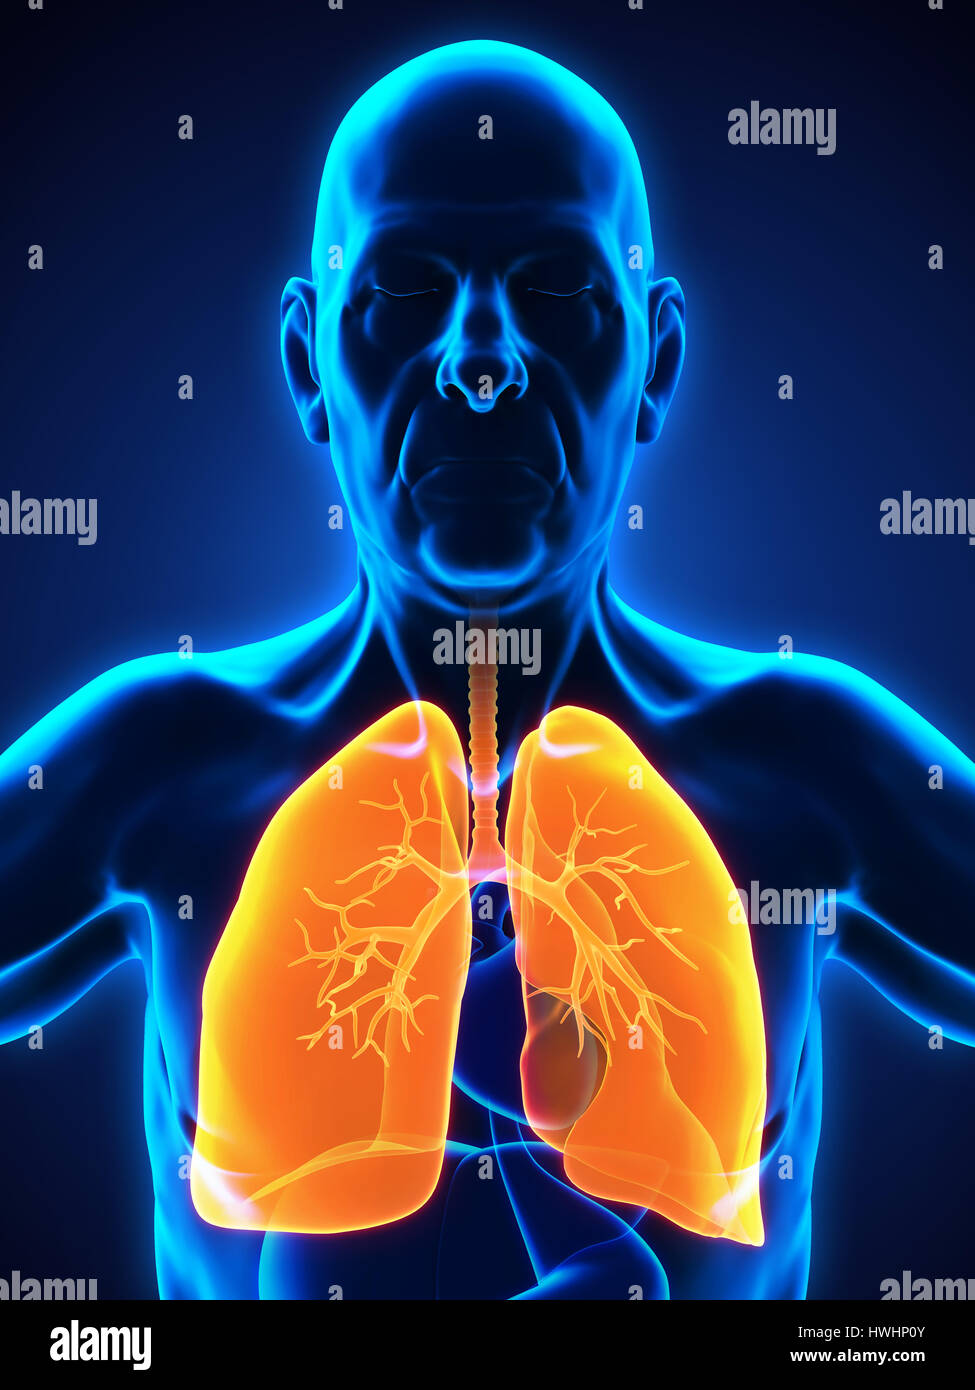 Elderly Male Respiratory System - Stock Image